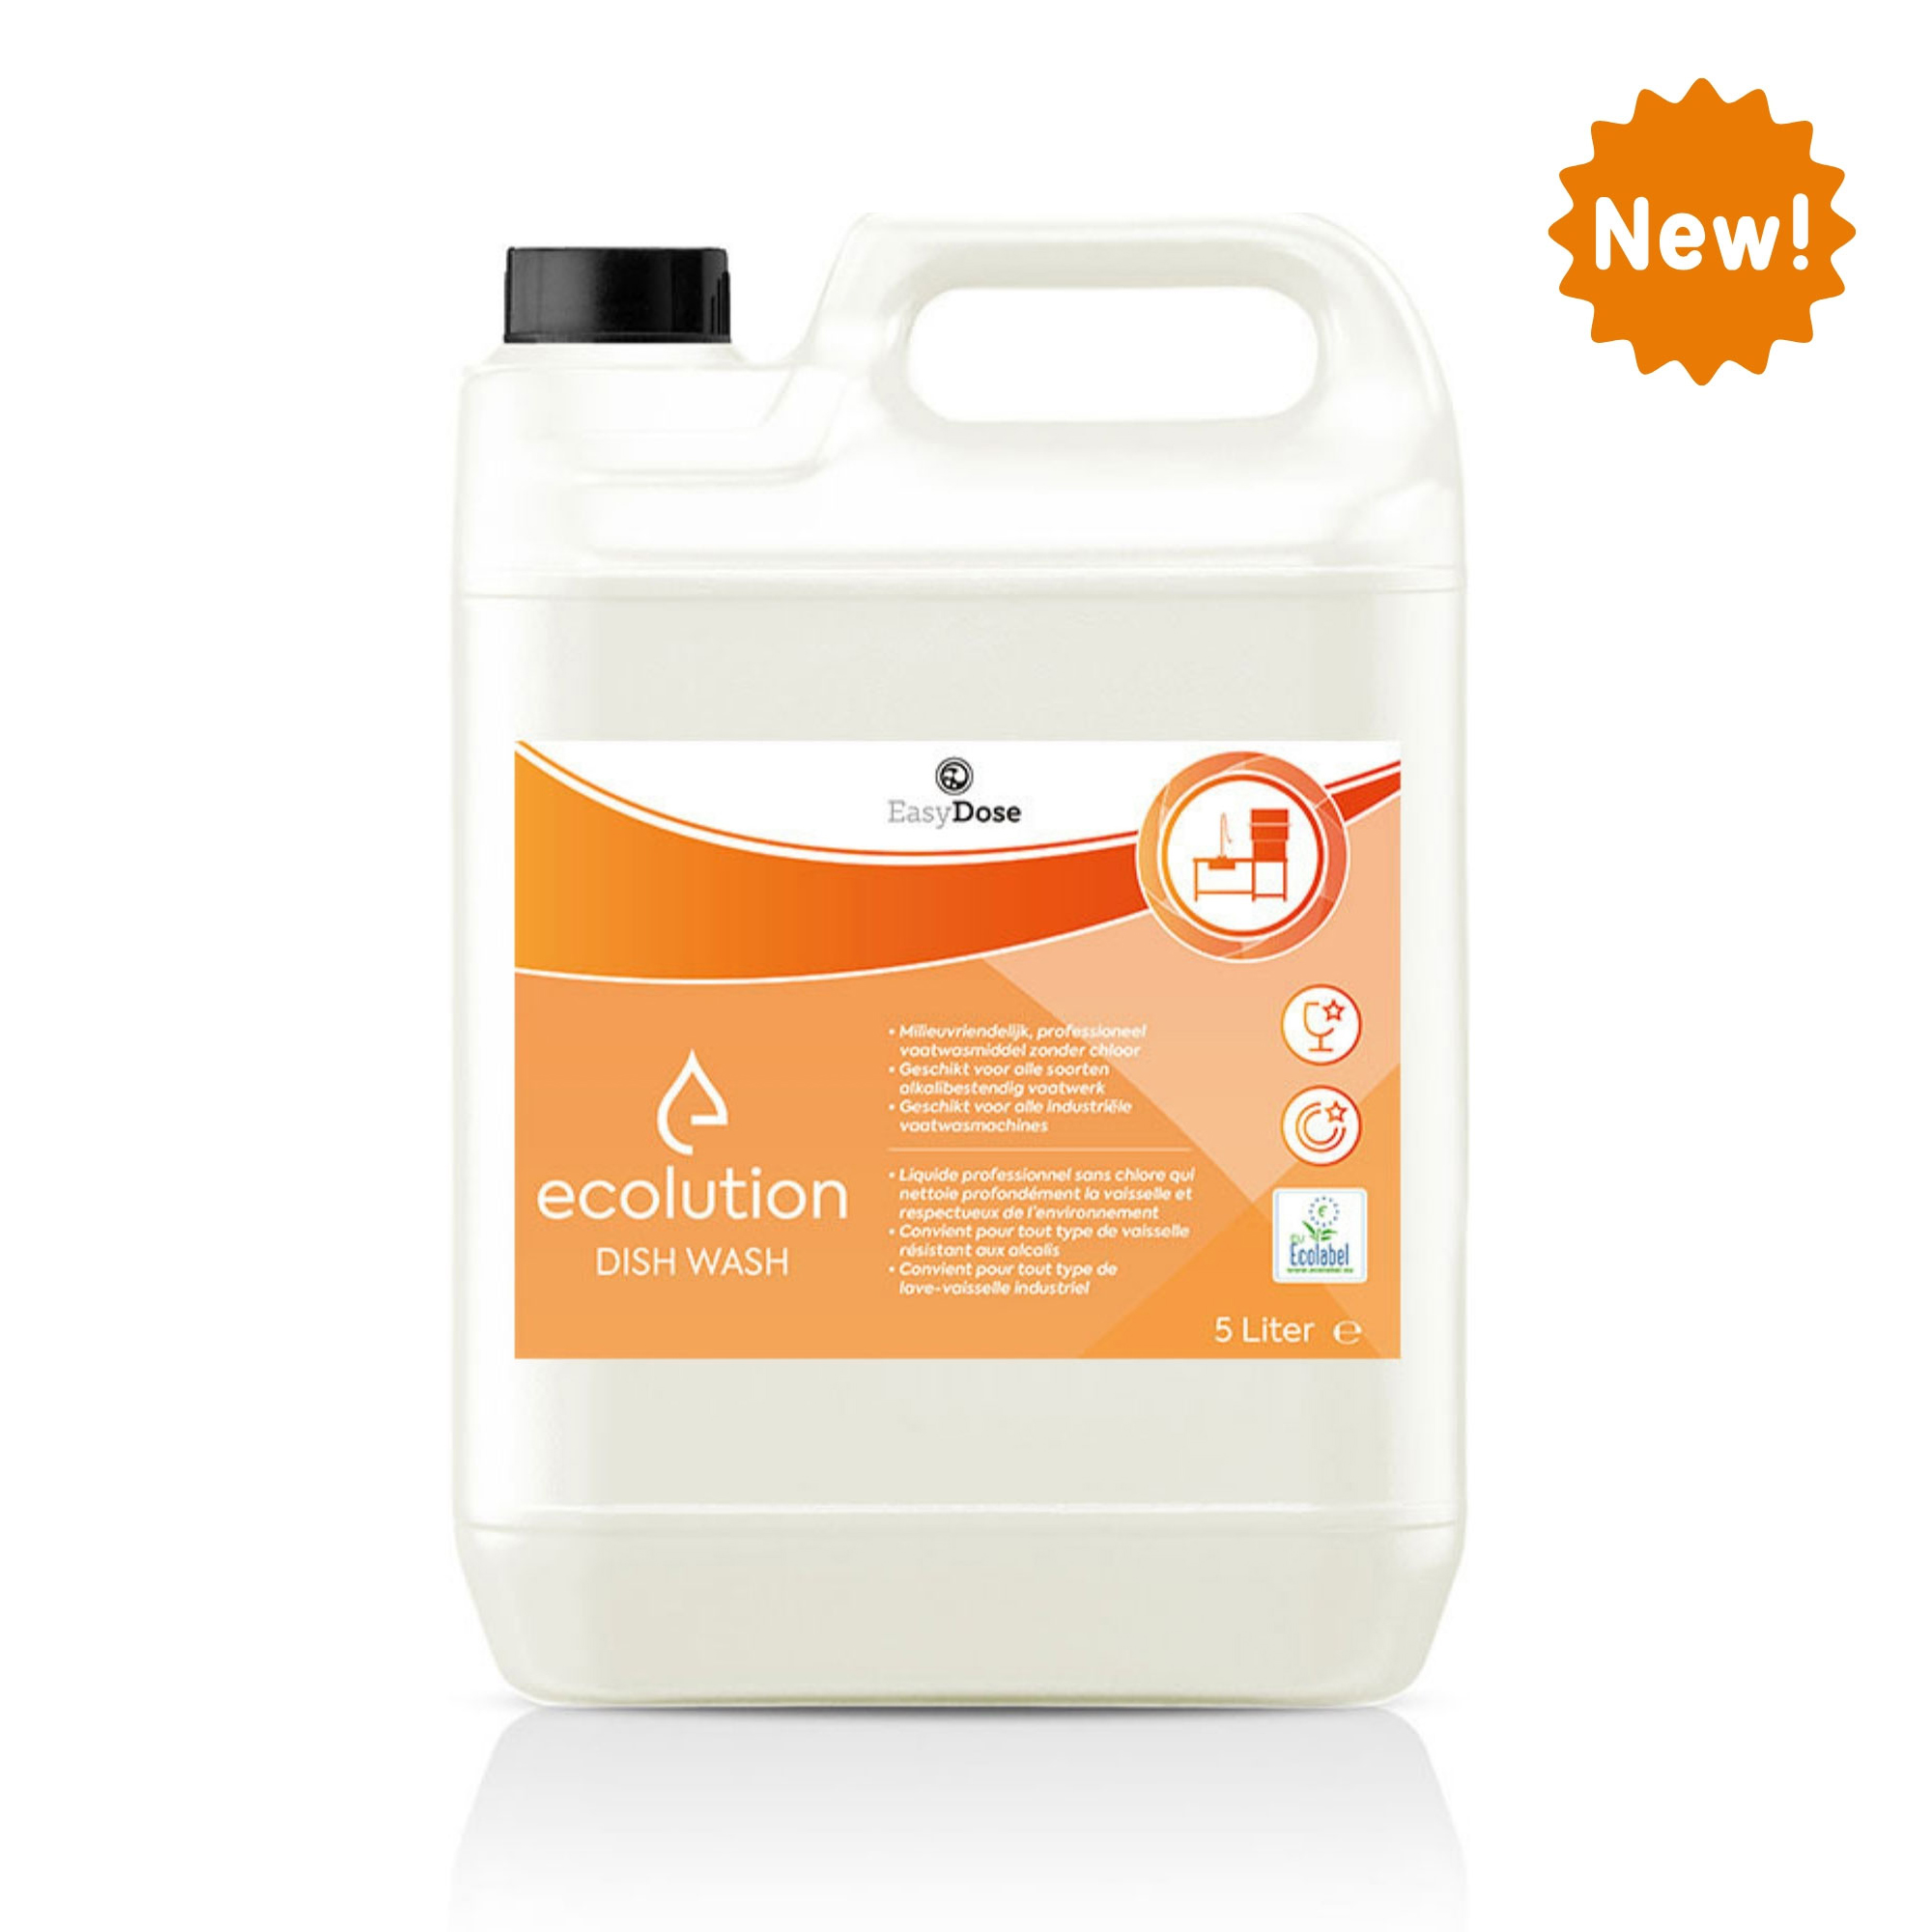 1035150_03 Ecolution Dish Wash ecolabel 5 liter Can (180)